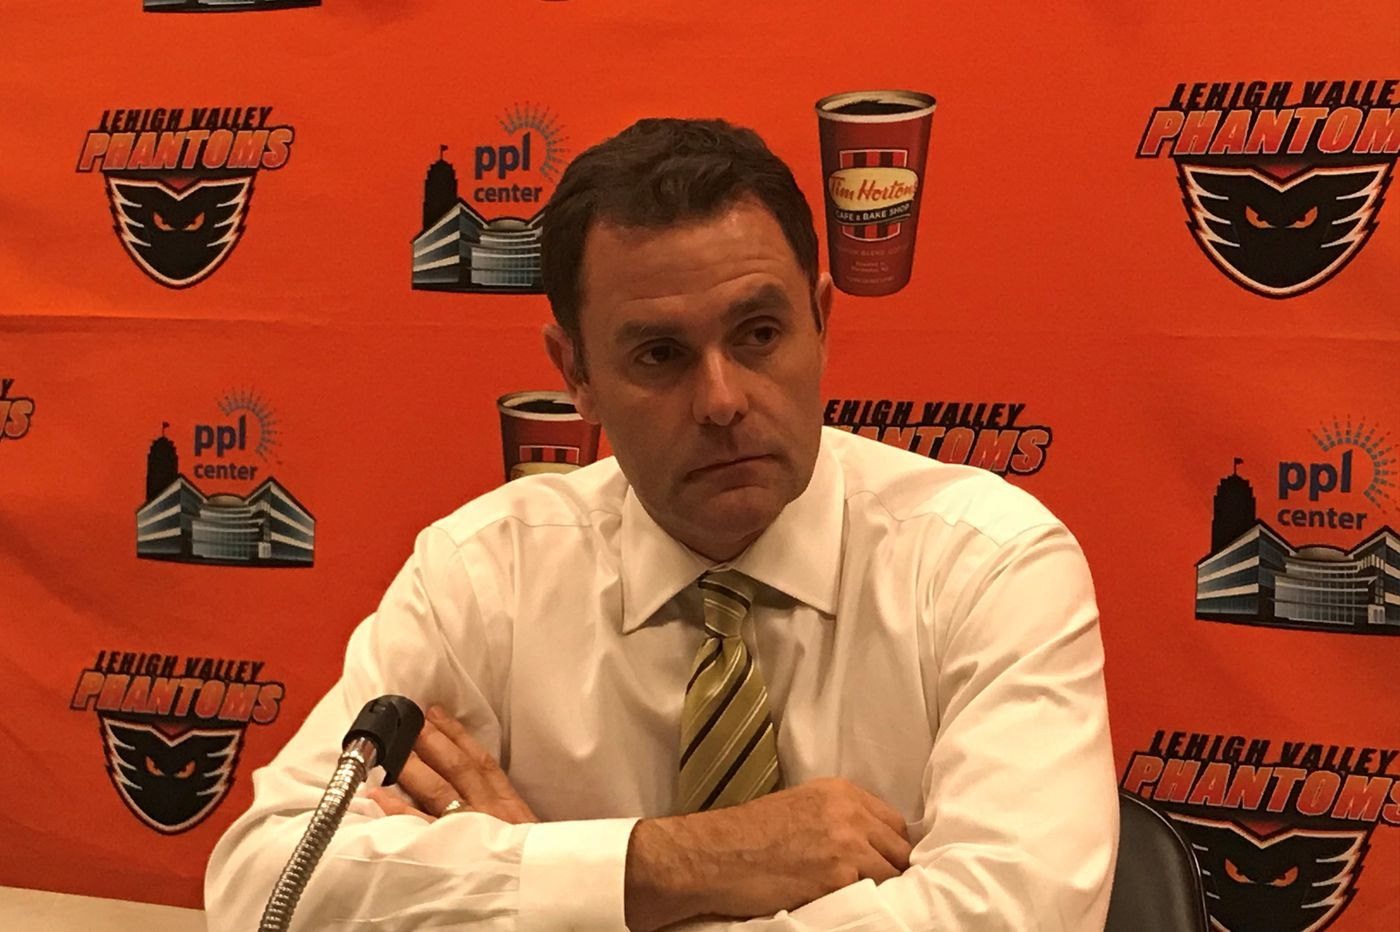 Scott Gordon, after success with the AHL's Phantoms, will take over as Flyers interim coach